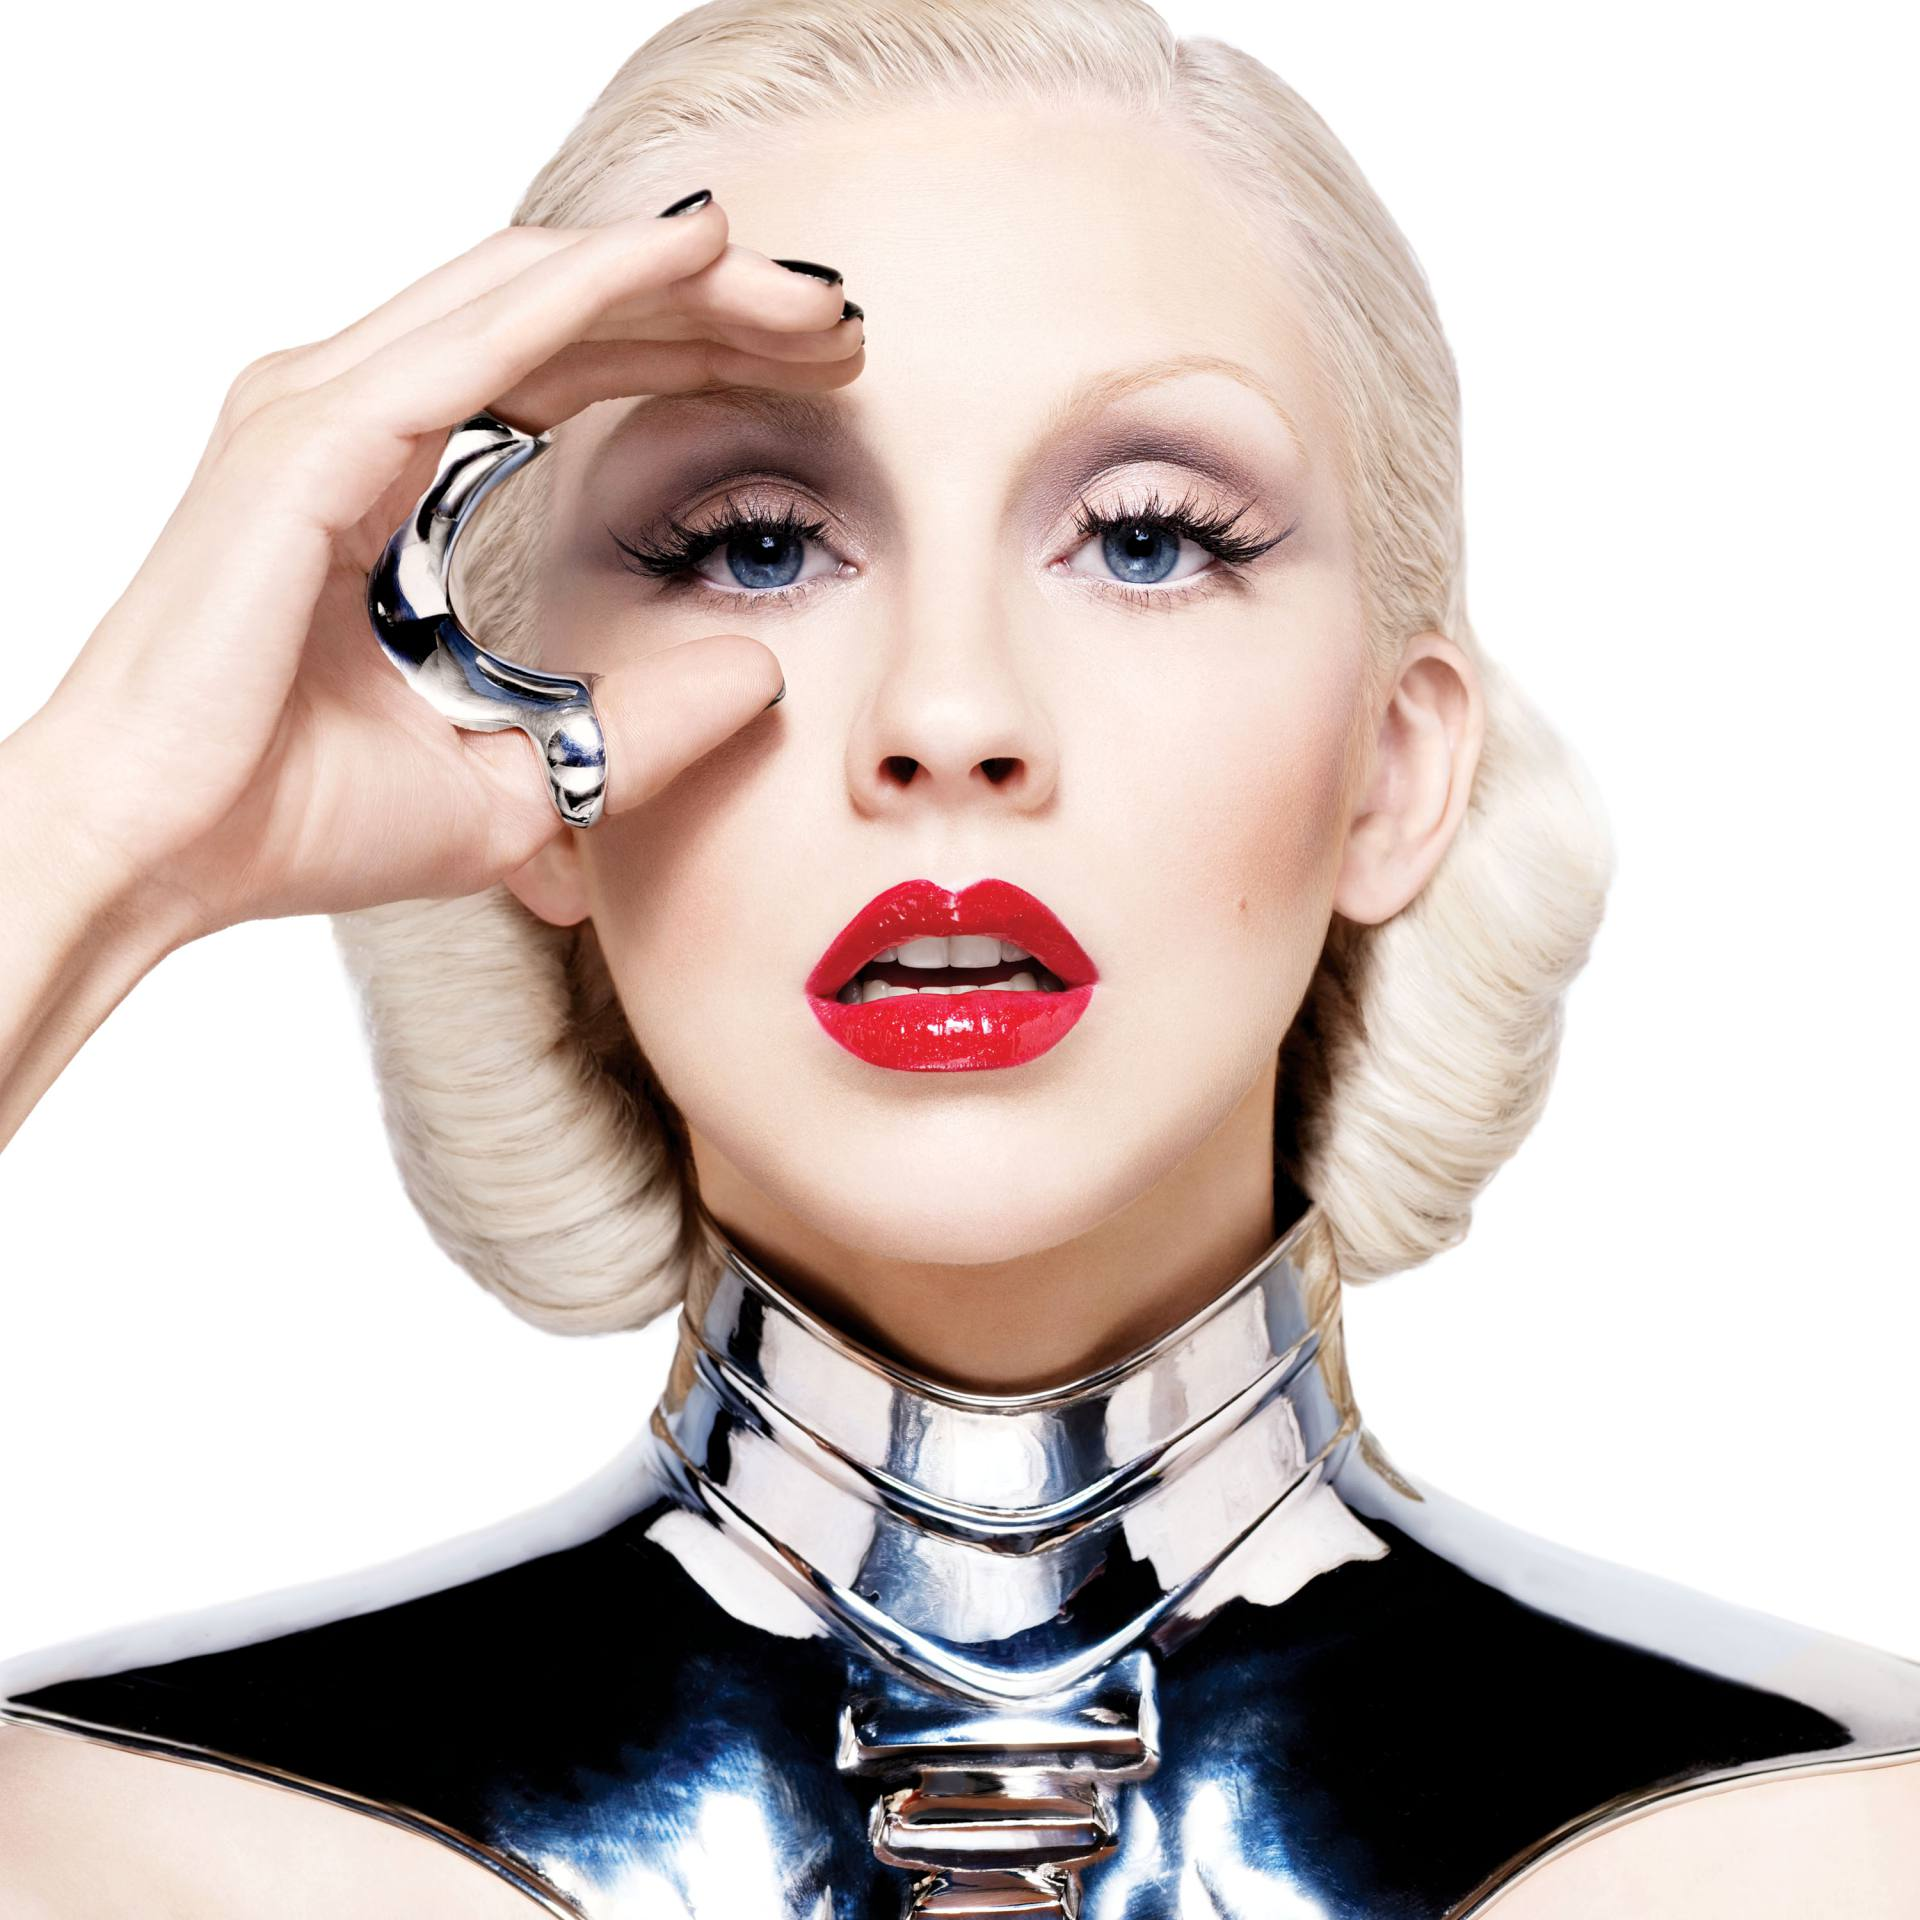 Christina Aguilera – Sexy Boobs In Naked Photoshoot Outtakes From Bionic Album Photoshoot 0018